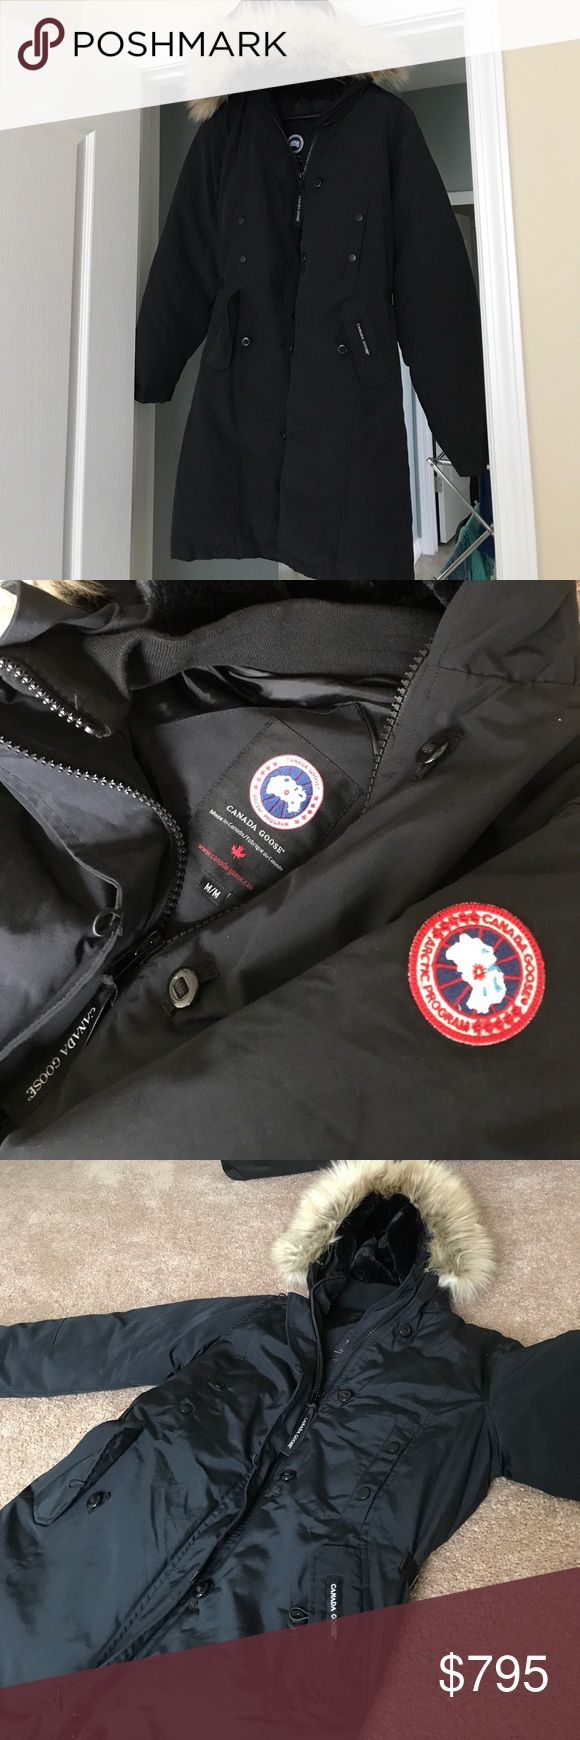 Canada Goose Kensington Jacket Women's Medium Brand-new with unattached tags. Beautifully lined down jacket with goose feathers. The best and warmest down jacket for extreme Arctic conditions. Water resistant and durable. Made in Canada. 100% authentic. Never worn but tags were taken off to try on and will be included with the jacket. Now that I live in Florida I will never need this  . Retails for $845 Canada Goose Jackets & Coats Puffers